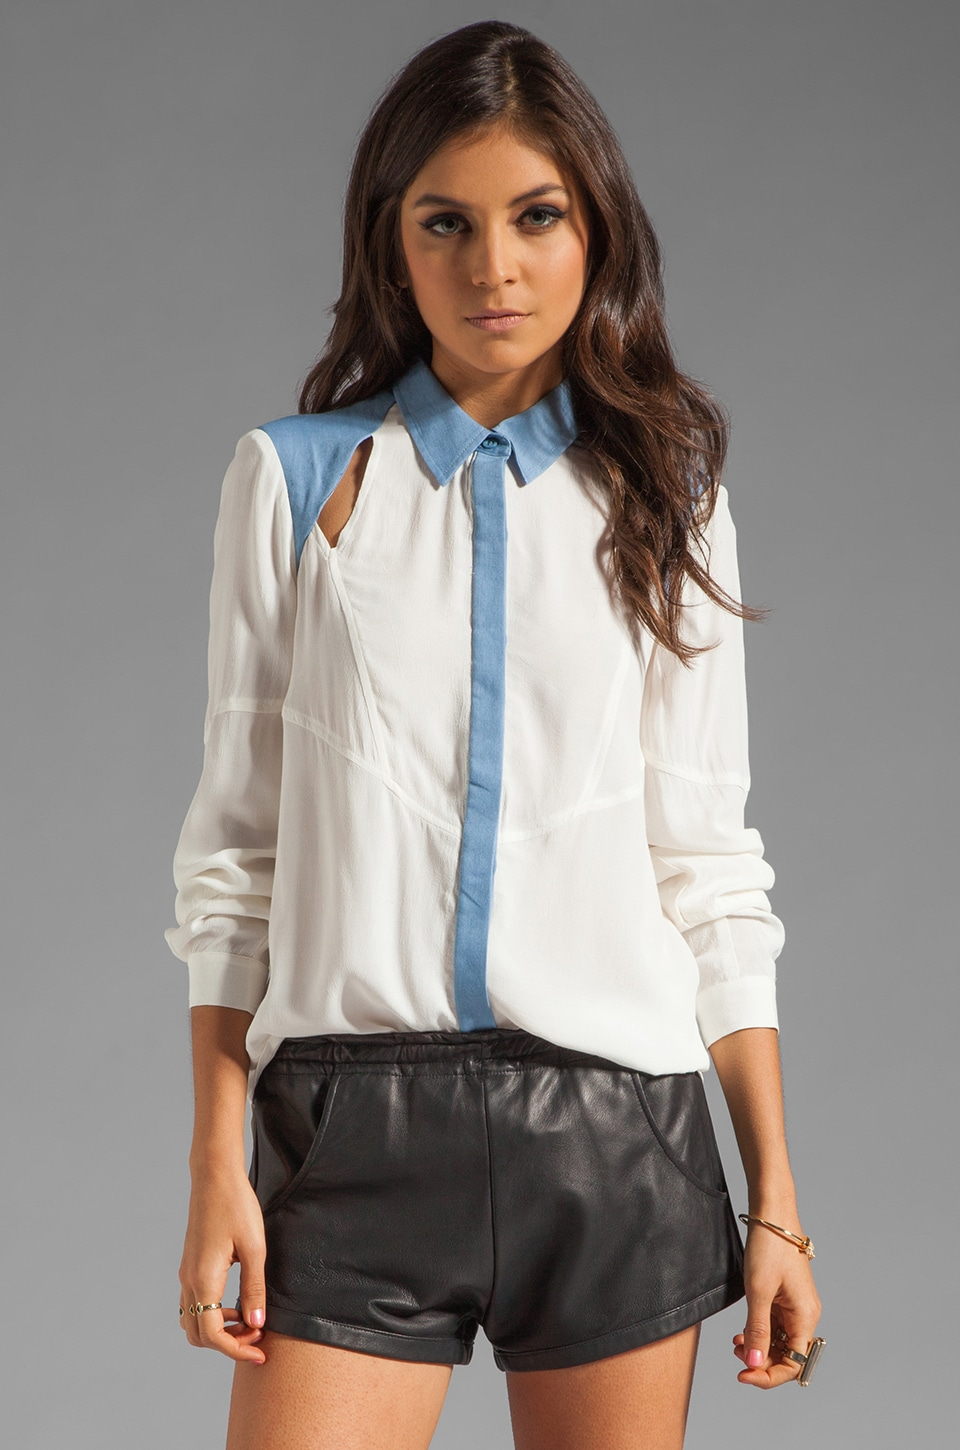 Finders Keepers Innocent Hearts Long Sleeve Shirt in White/Chambray